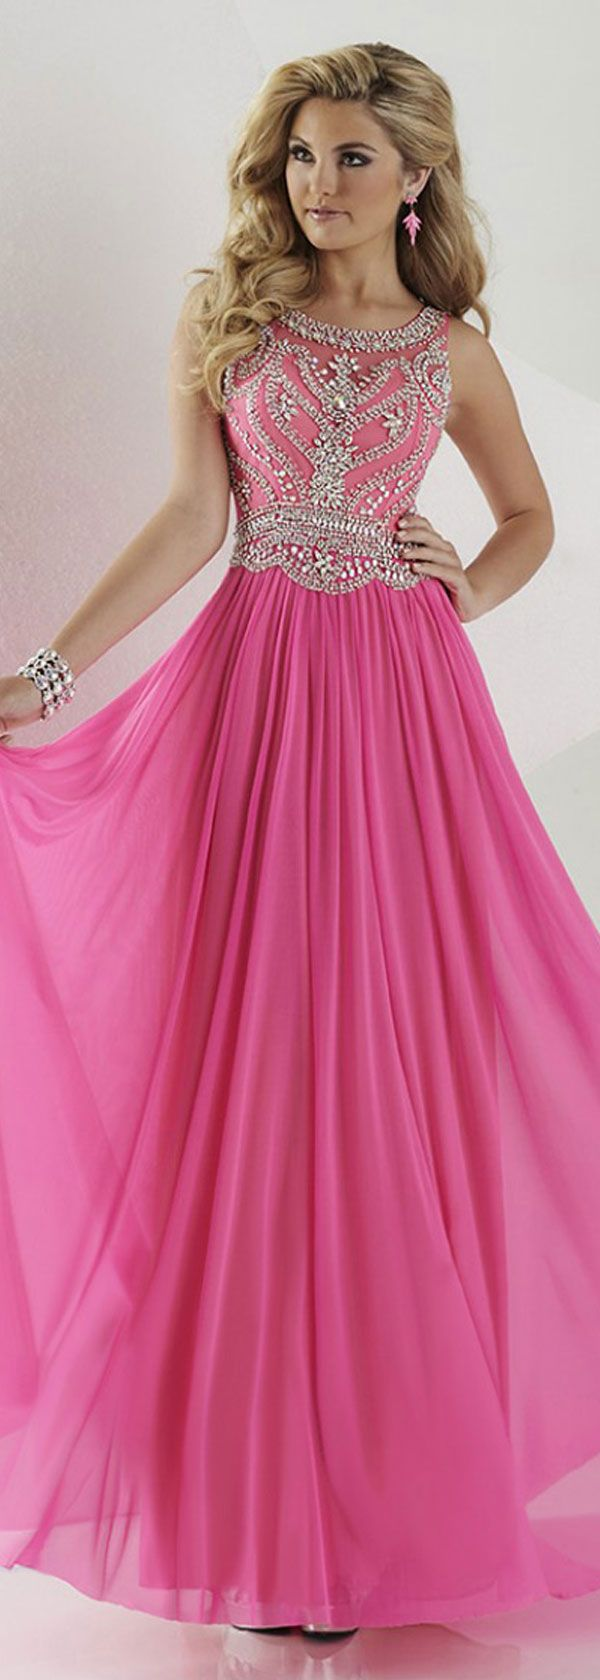 Fashionable Chiffon Scoop Neckline A-Line Prom Dresses With Beads & Rhinestones